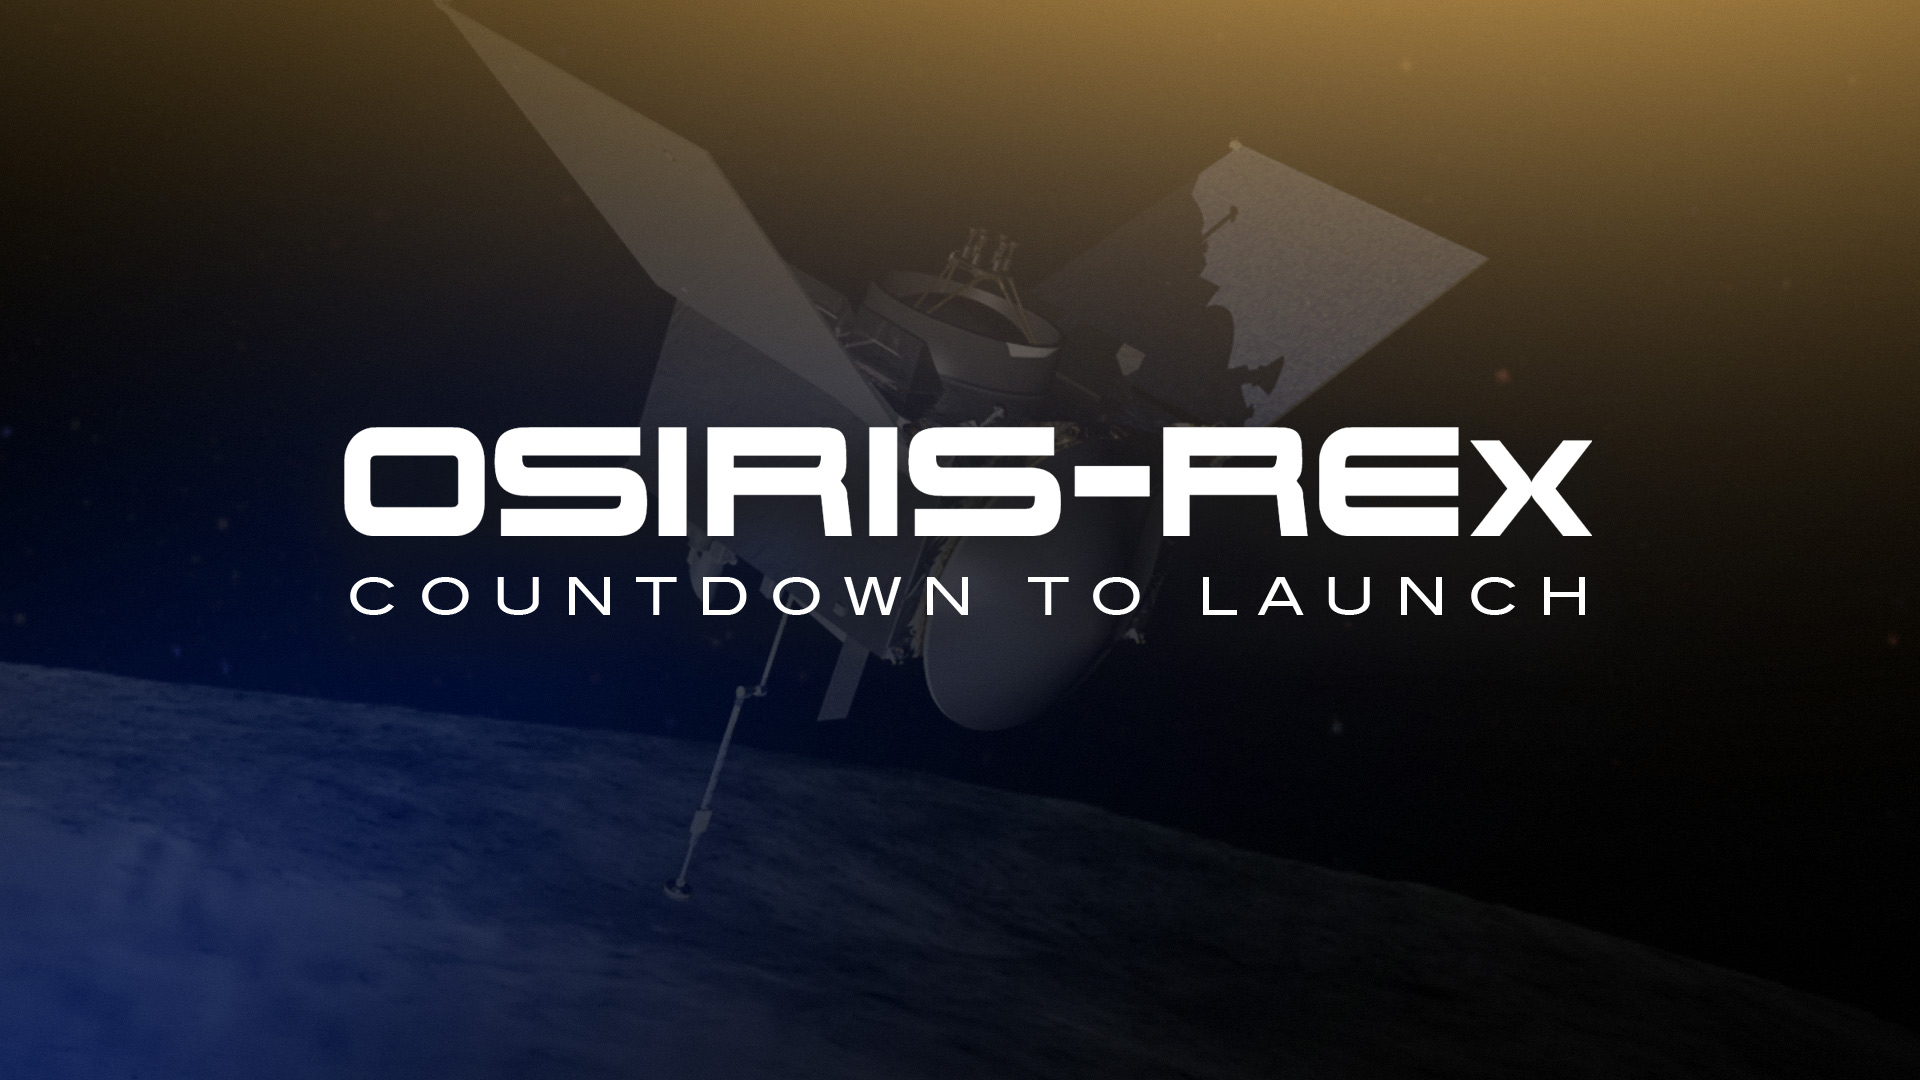 OSIRIS-REX Countdown to Launch hero